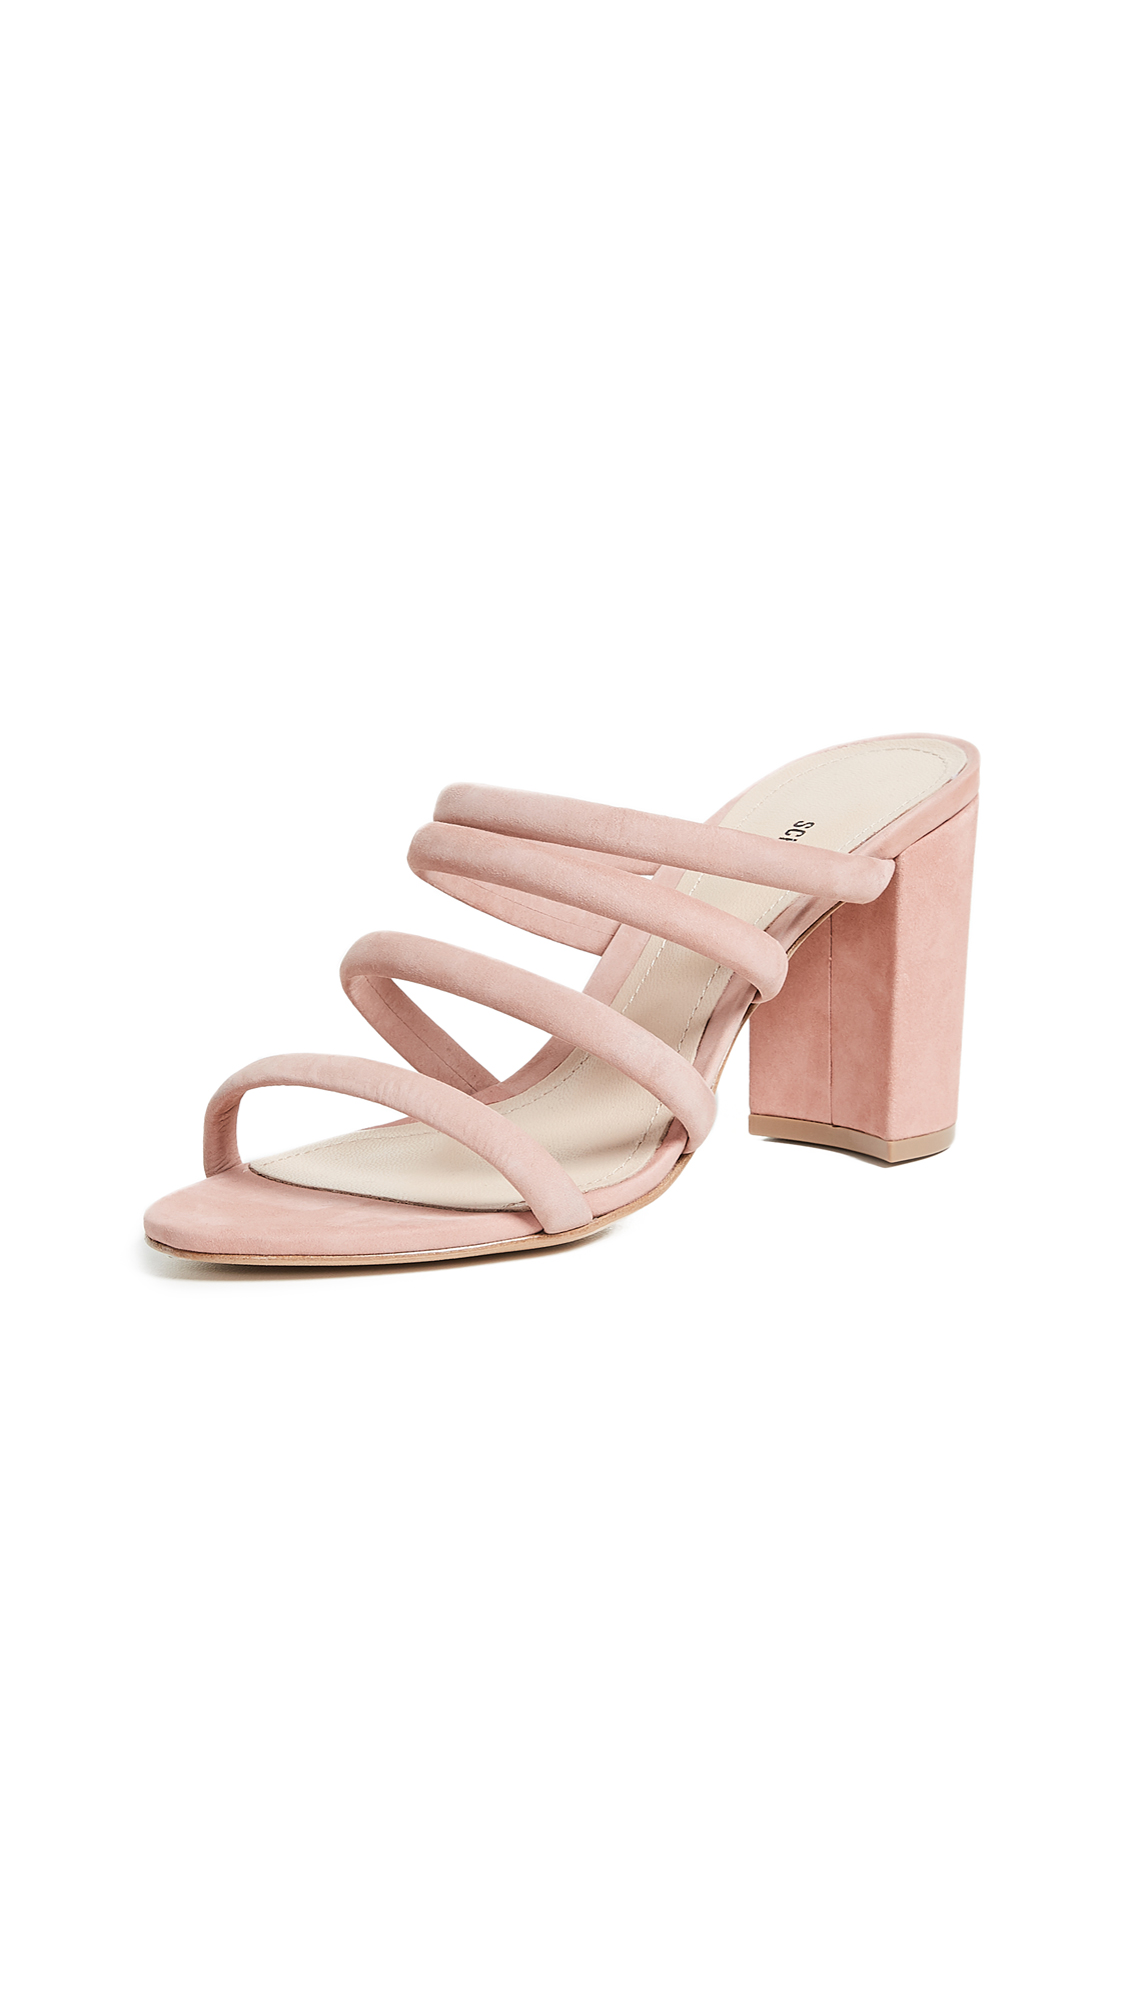 Schutz Felisa Tubular Sandals - Poppy Rose